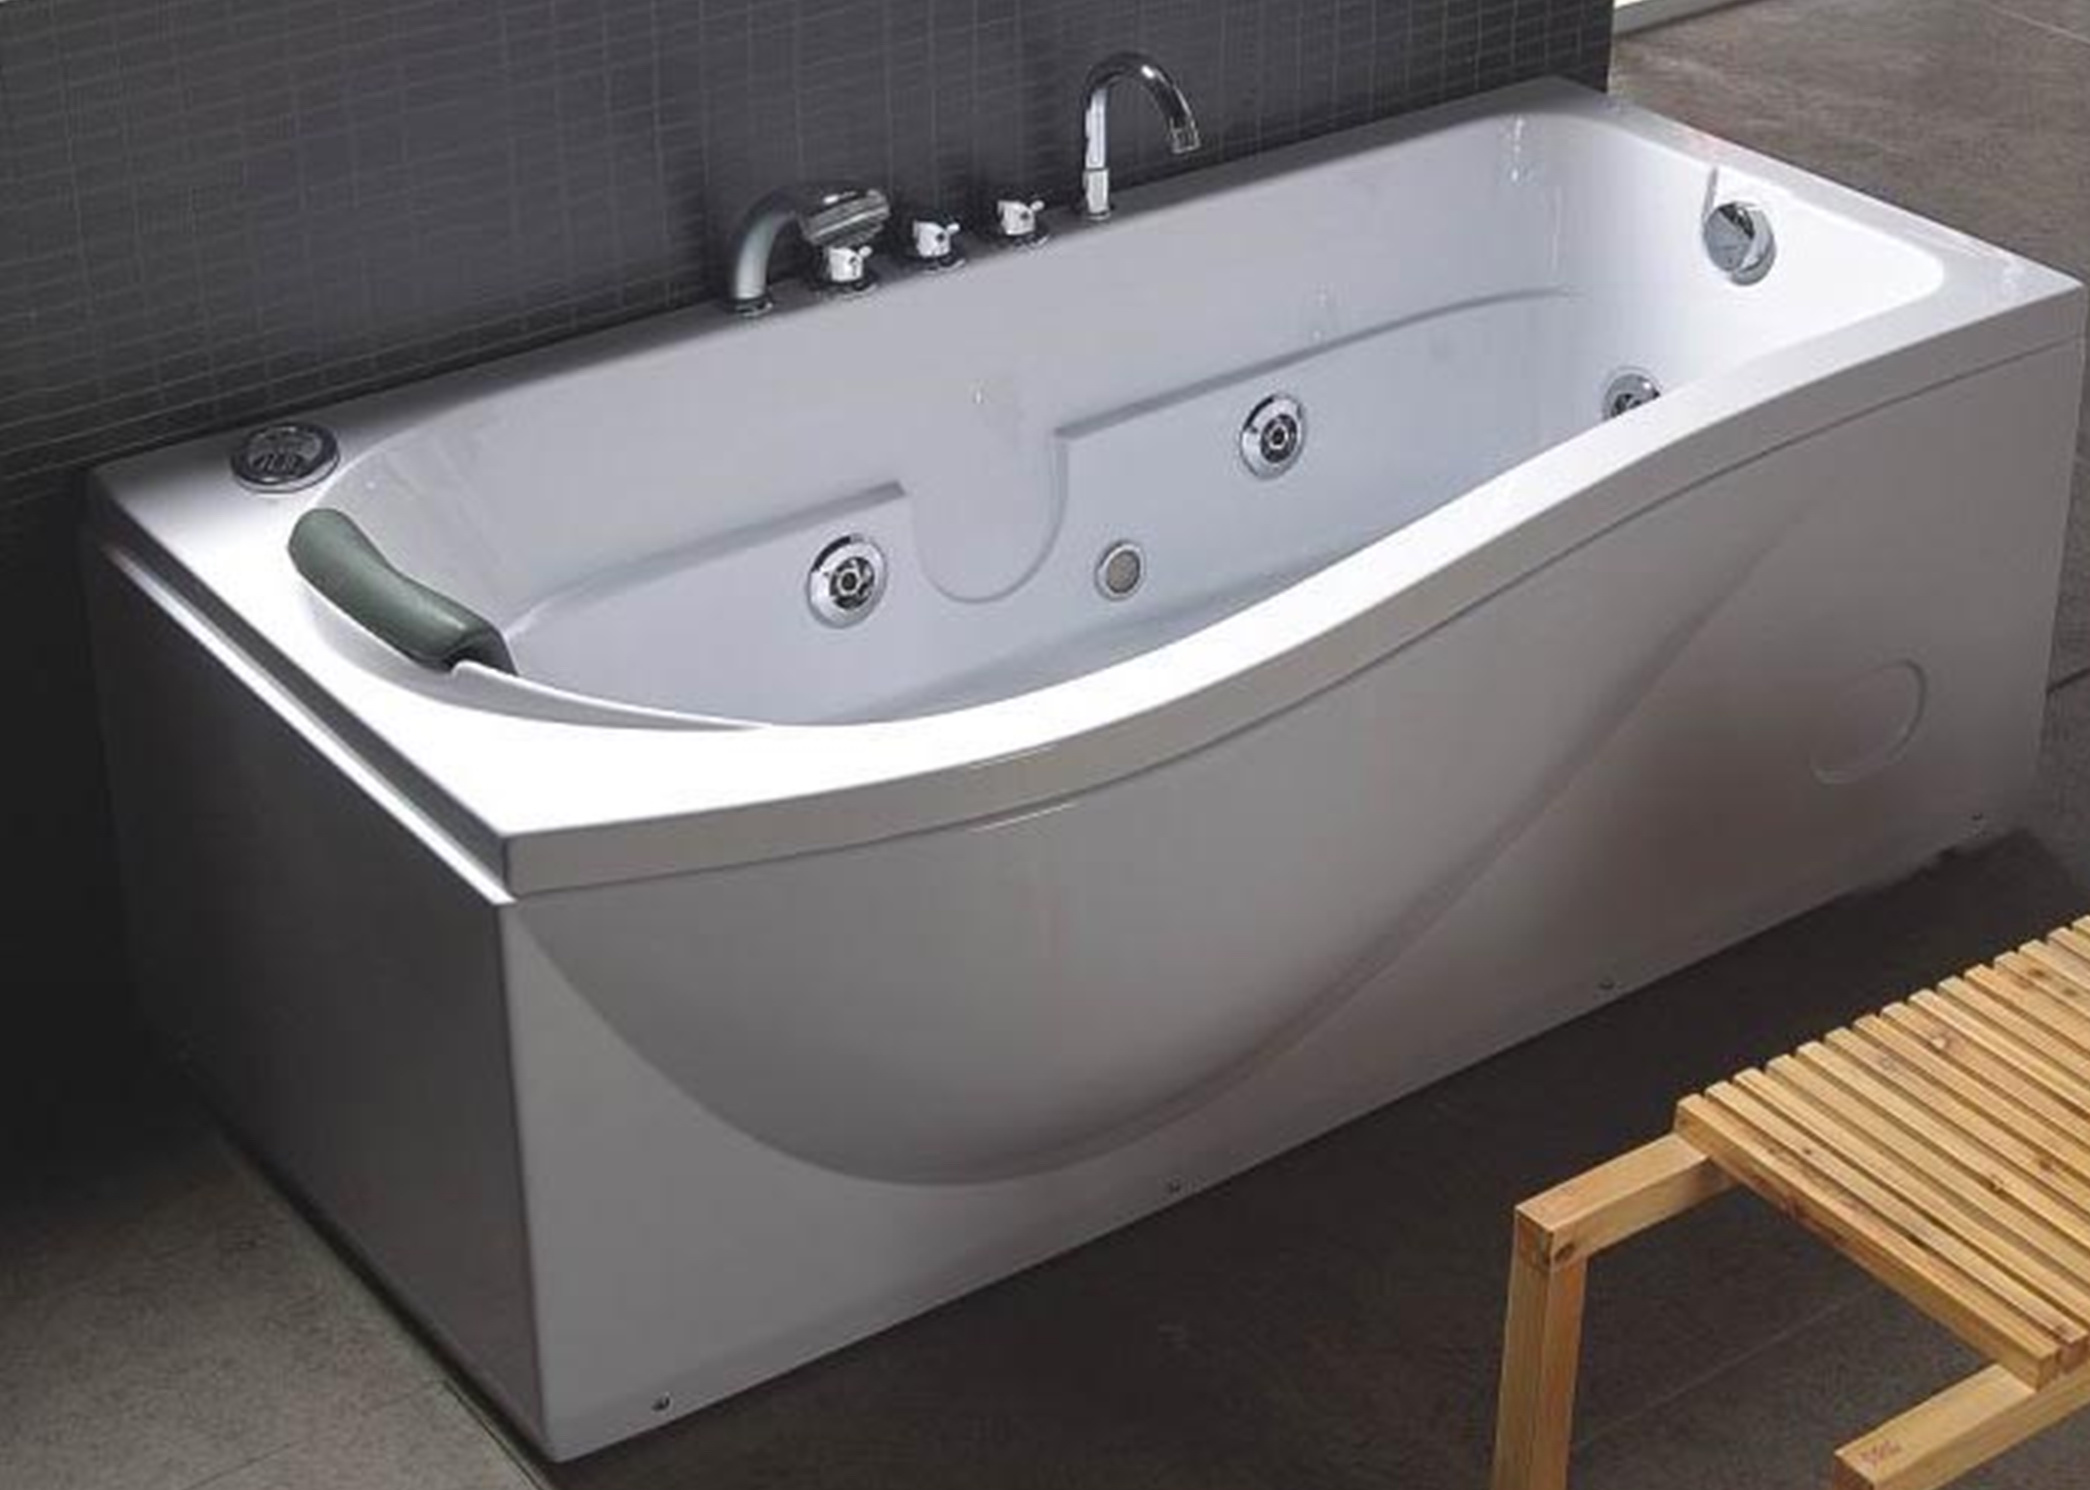 drain gallery plug also types bathtub different maax of for best removal inspiration stoppers impressive